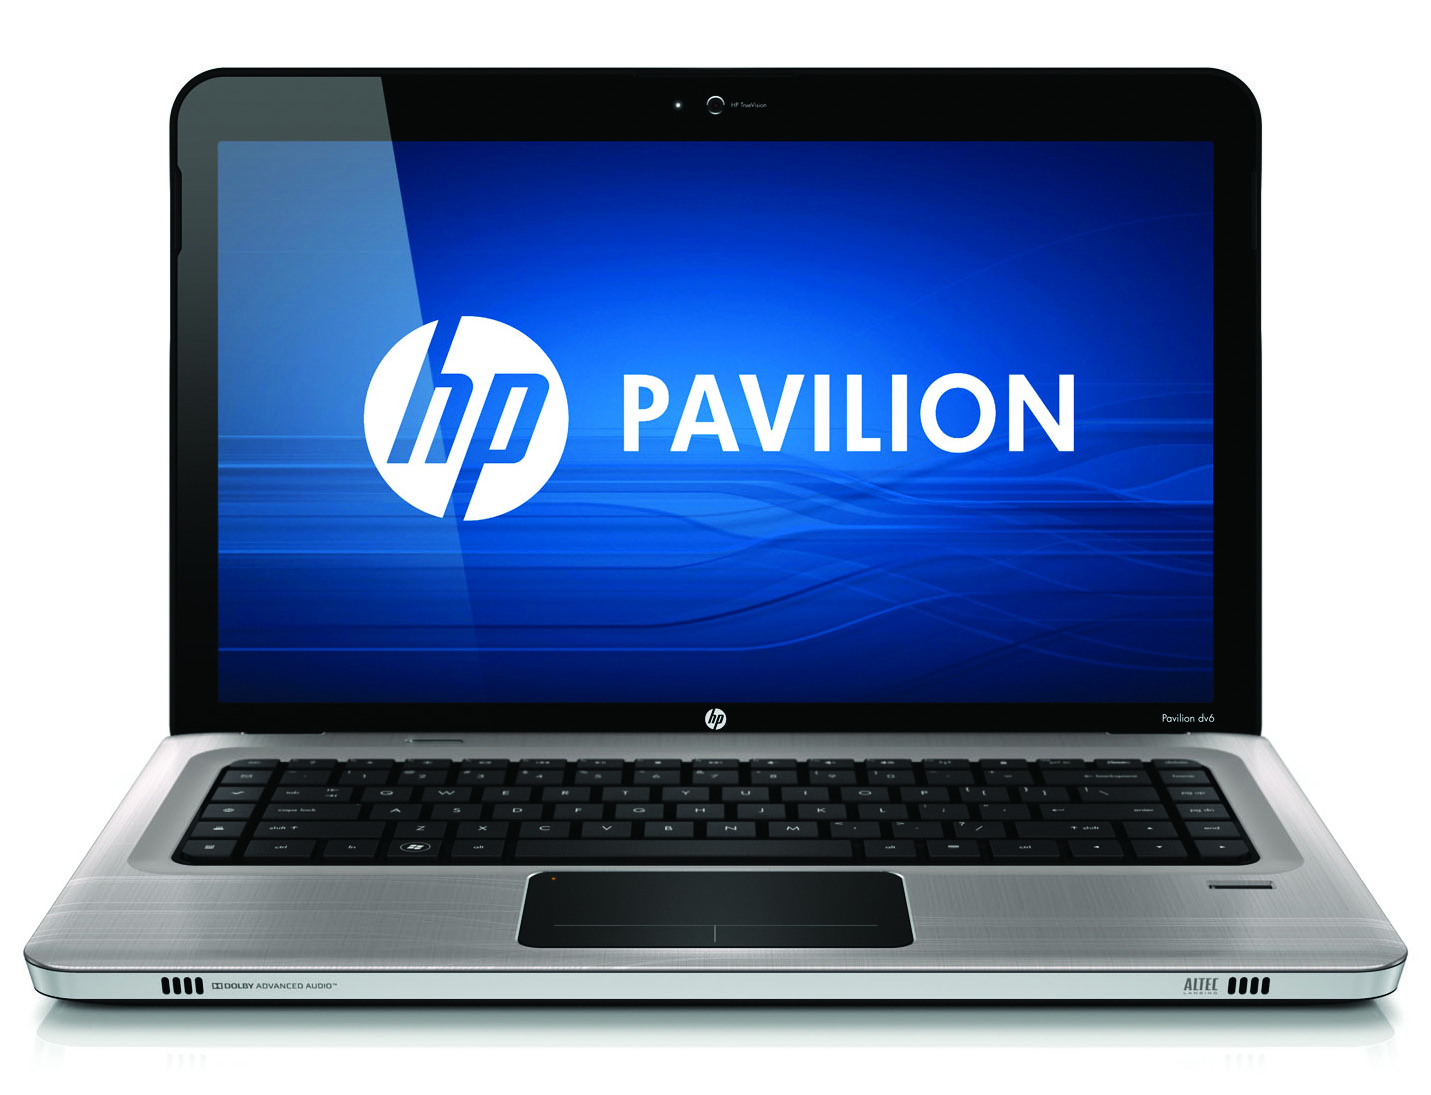 hp pavilion dv6 the first touchscreen pavilion notebook gizmodo australia. Black Bedroom Furniture Sets. Home Design Ideas